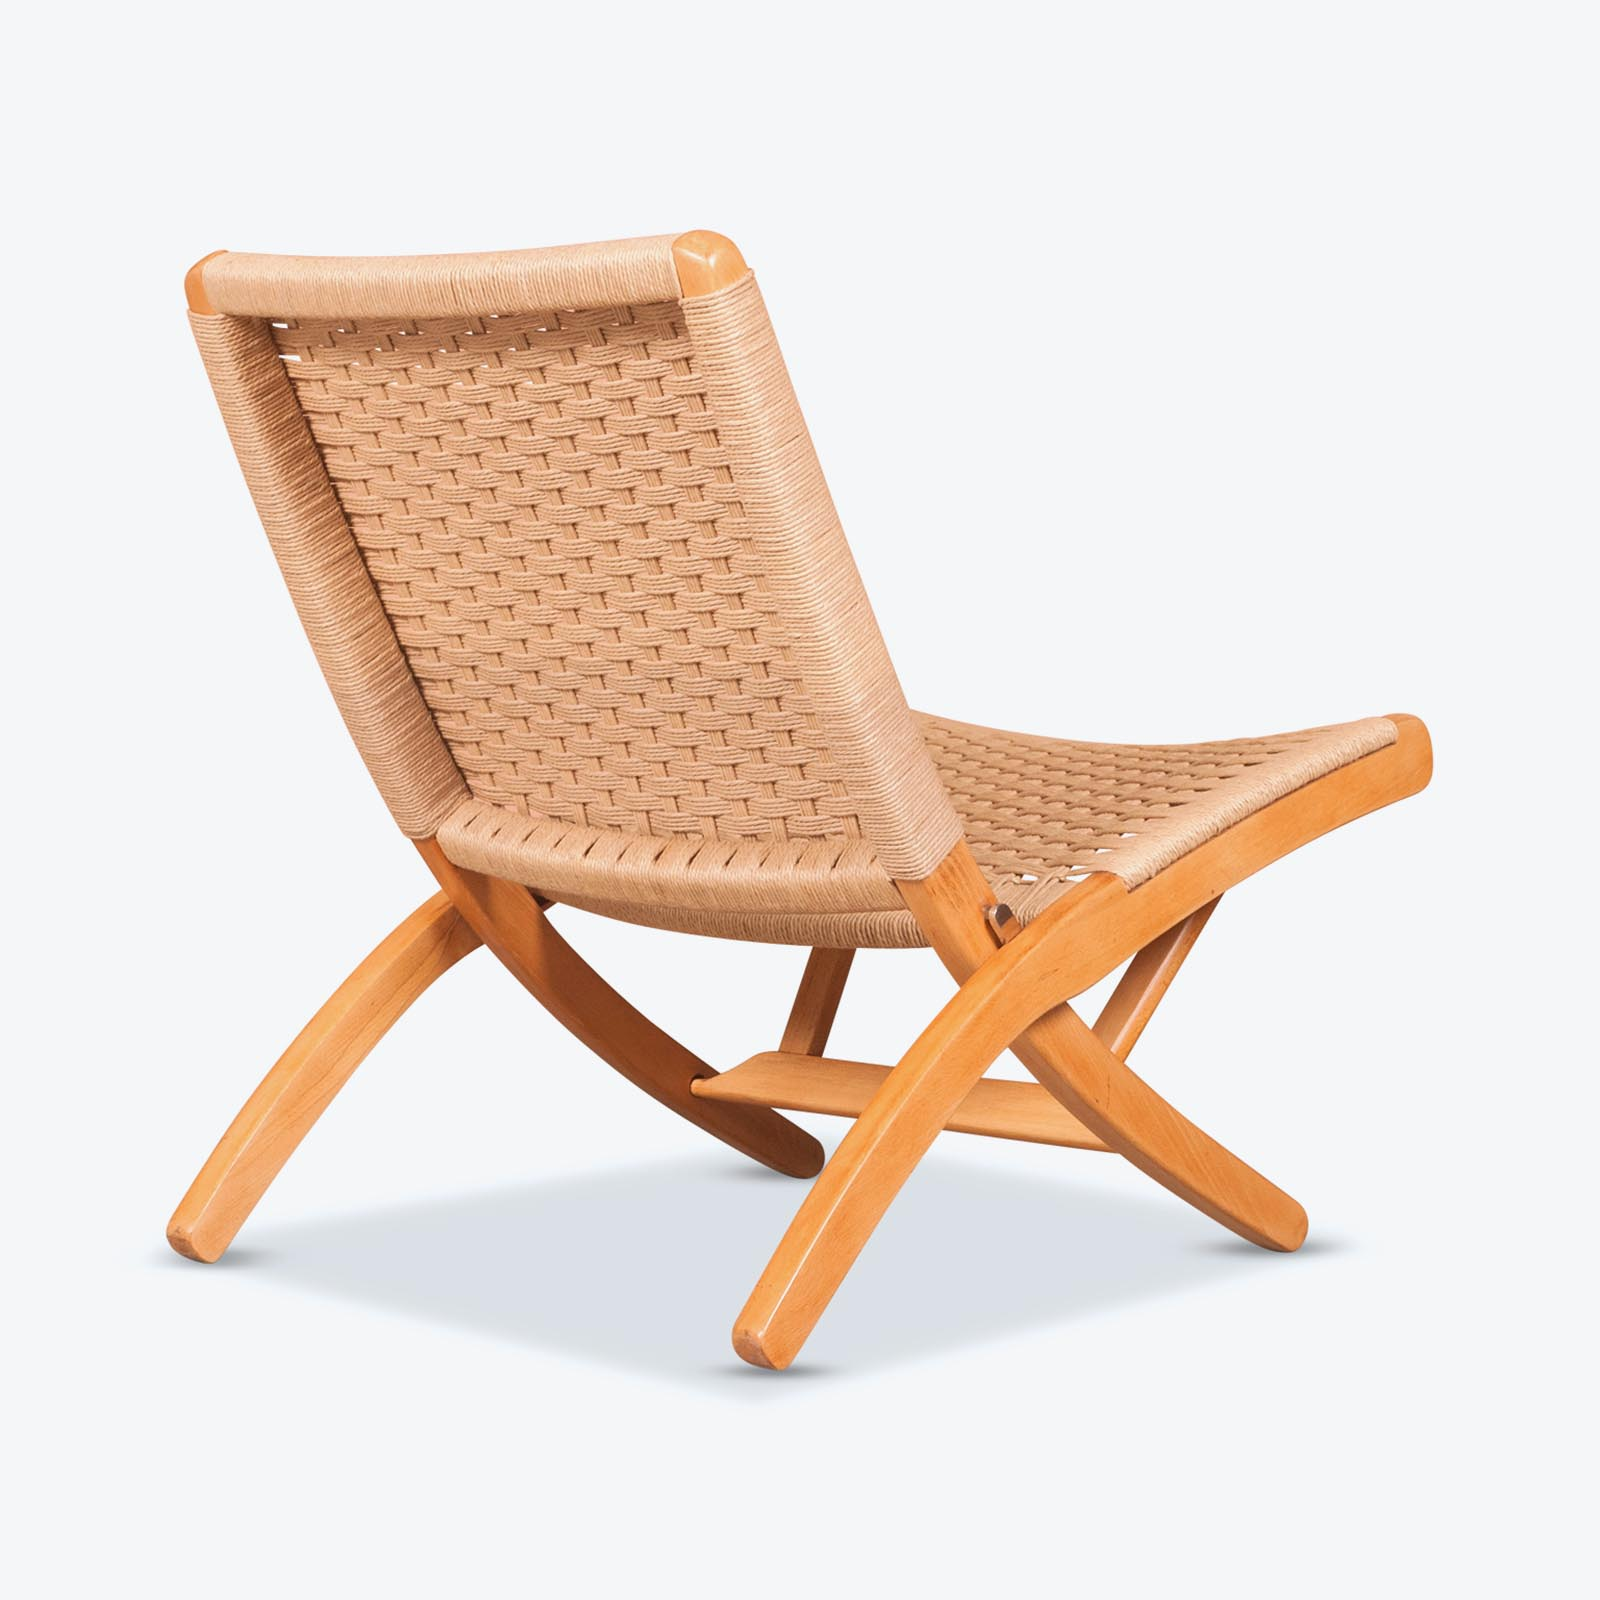 Hans Wegner Folding Chair Japanese Folding Chair In The Style Of Hans Wegner With